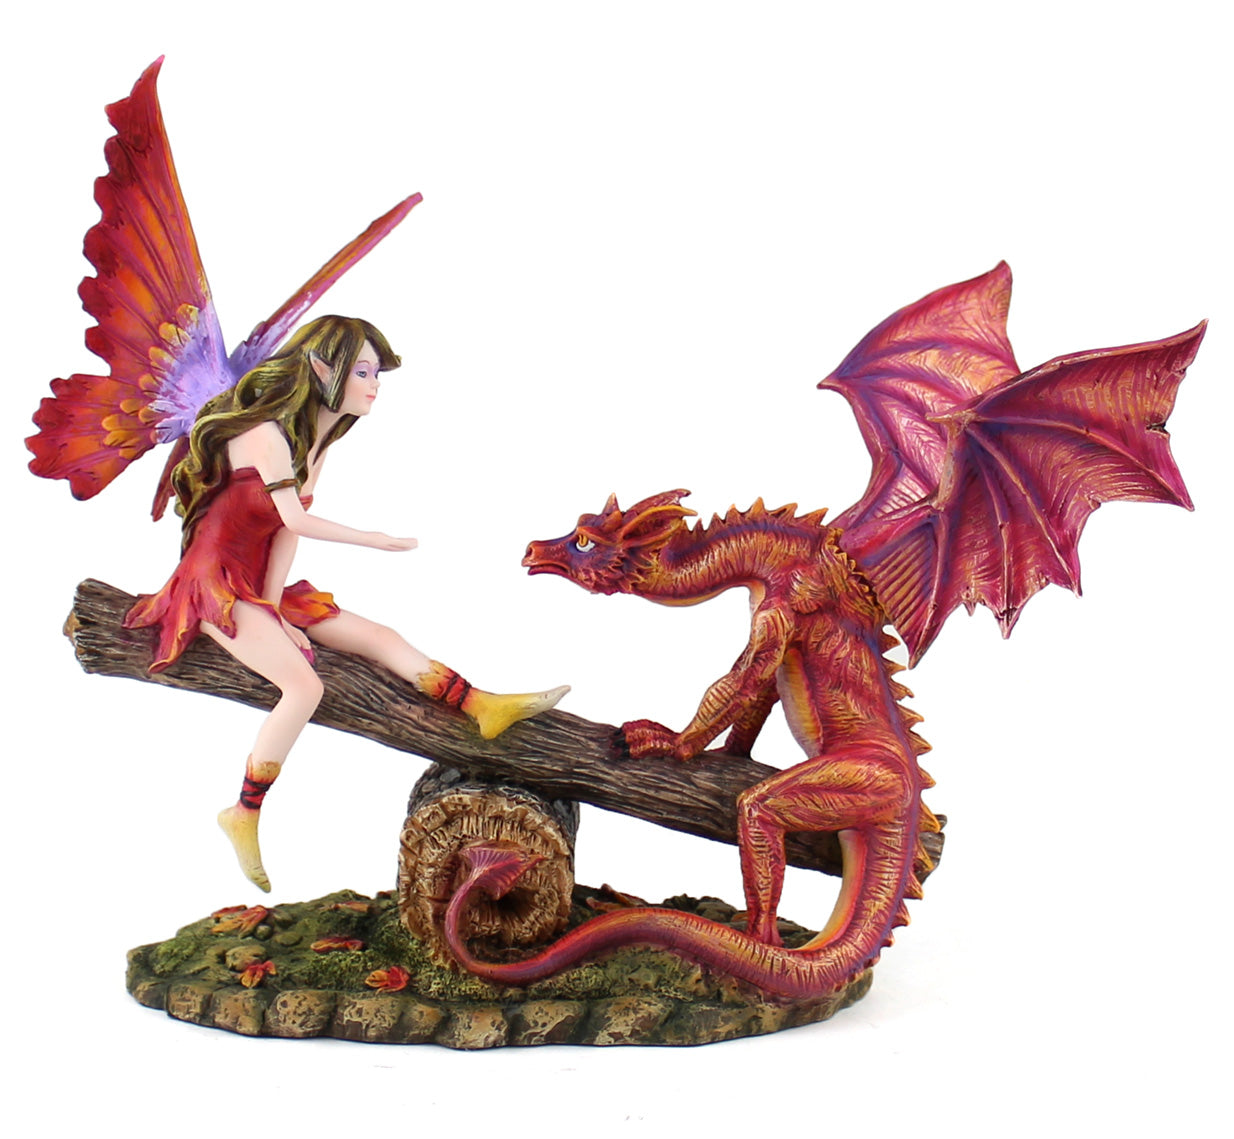 Fairy & Dragon on Seesaw